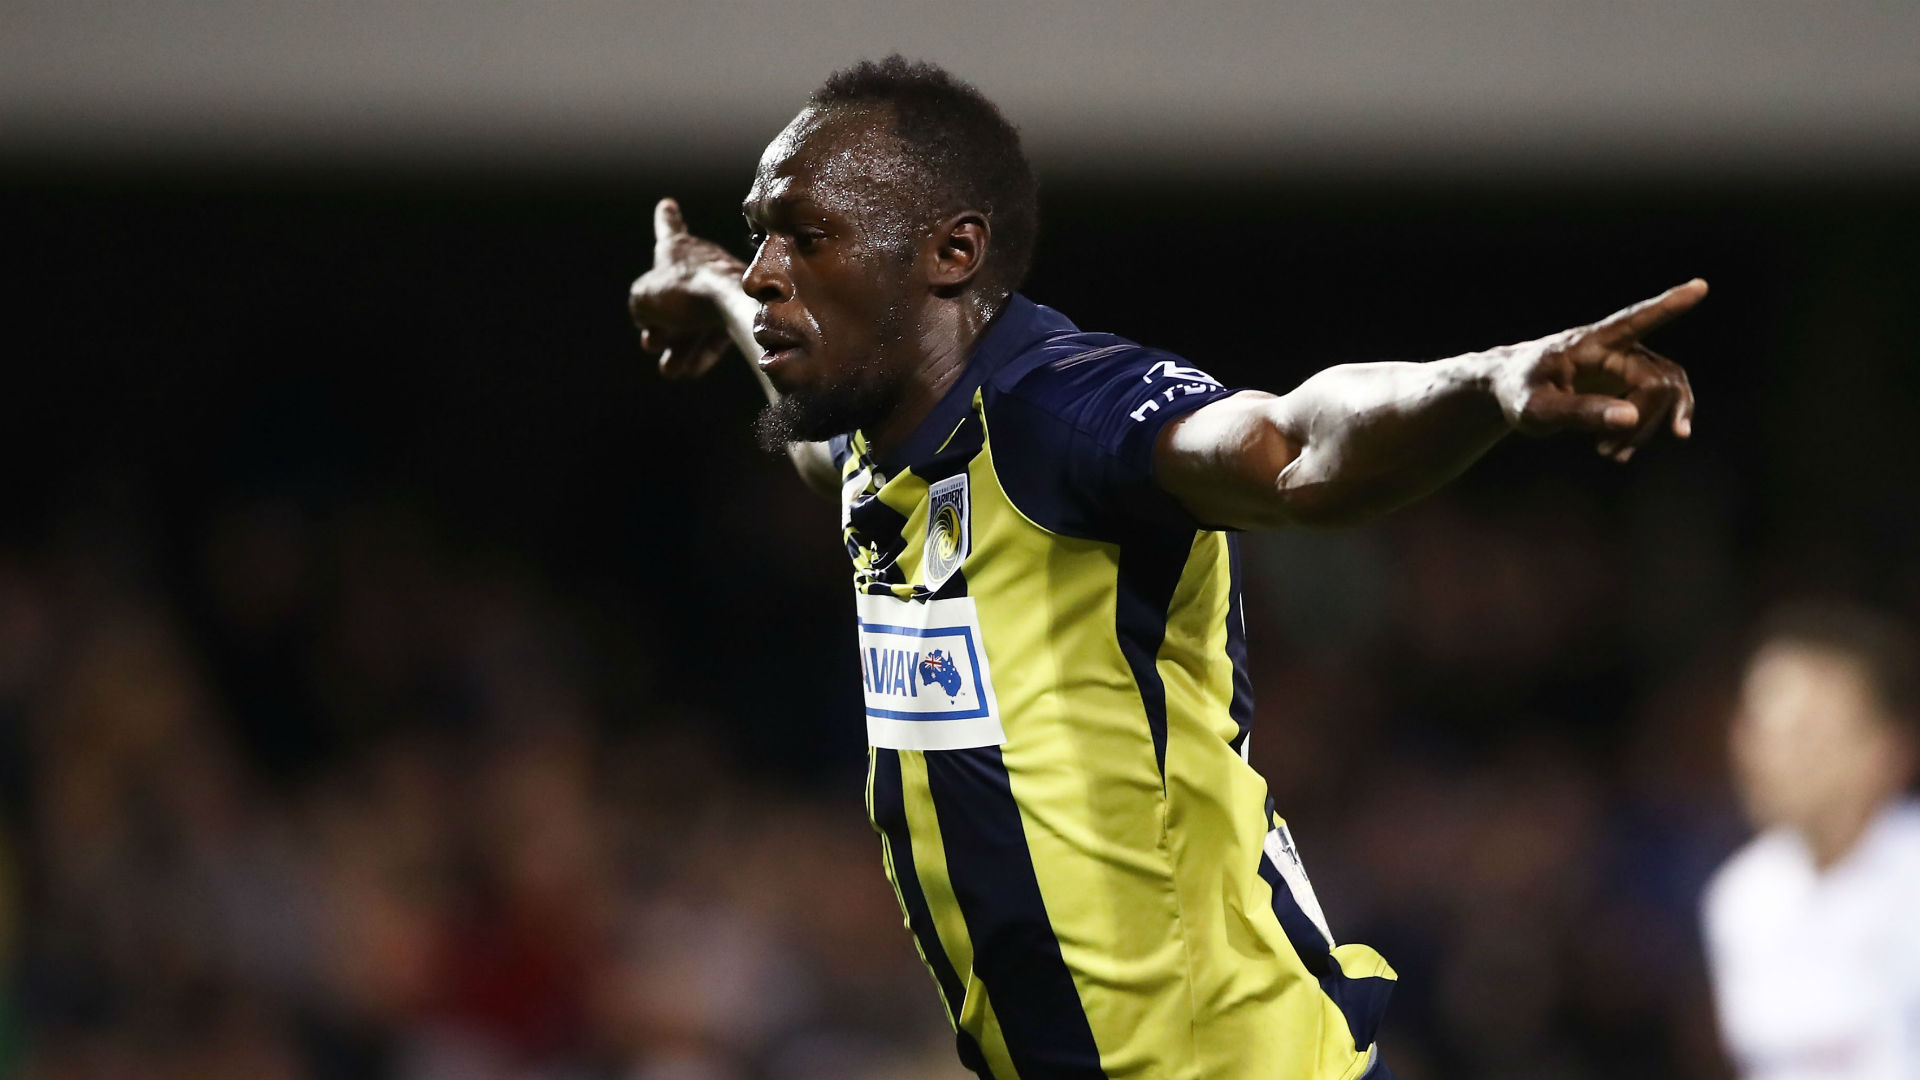 Bolt scored first goals in professional football